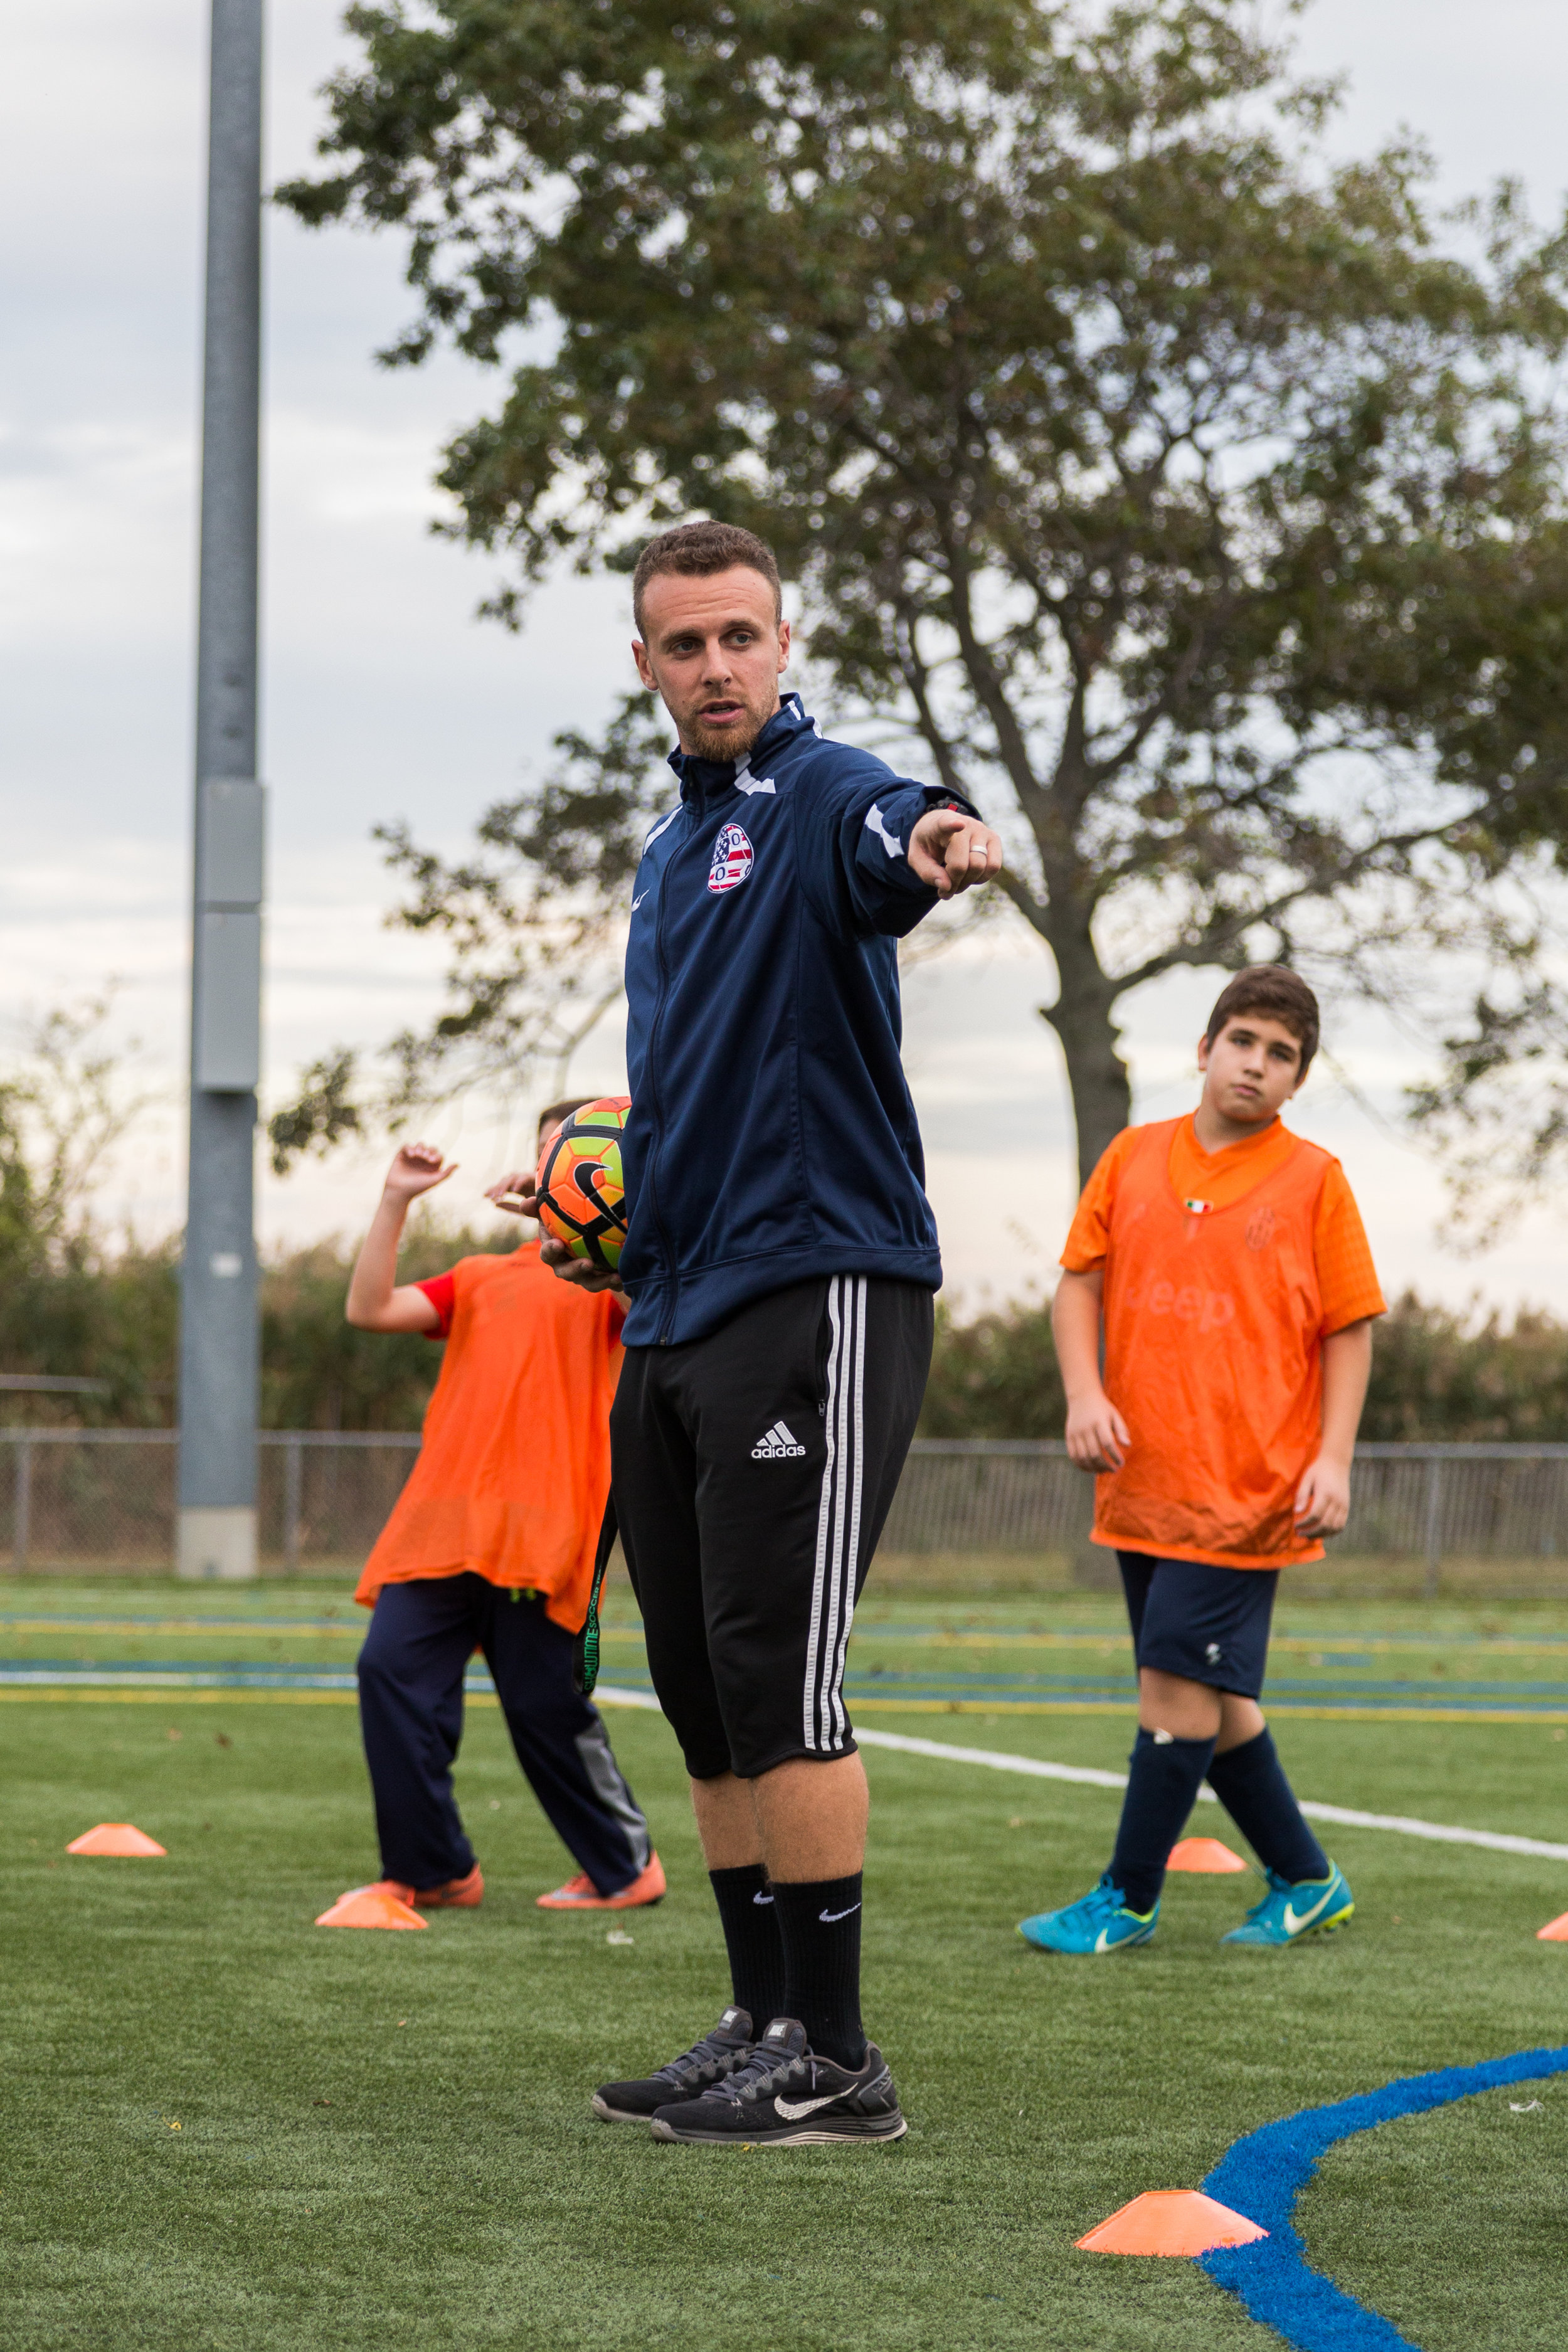 Brian Siergiej - VP and Co-Founder Showtime Soccer